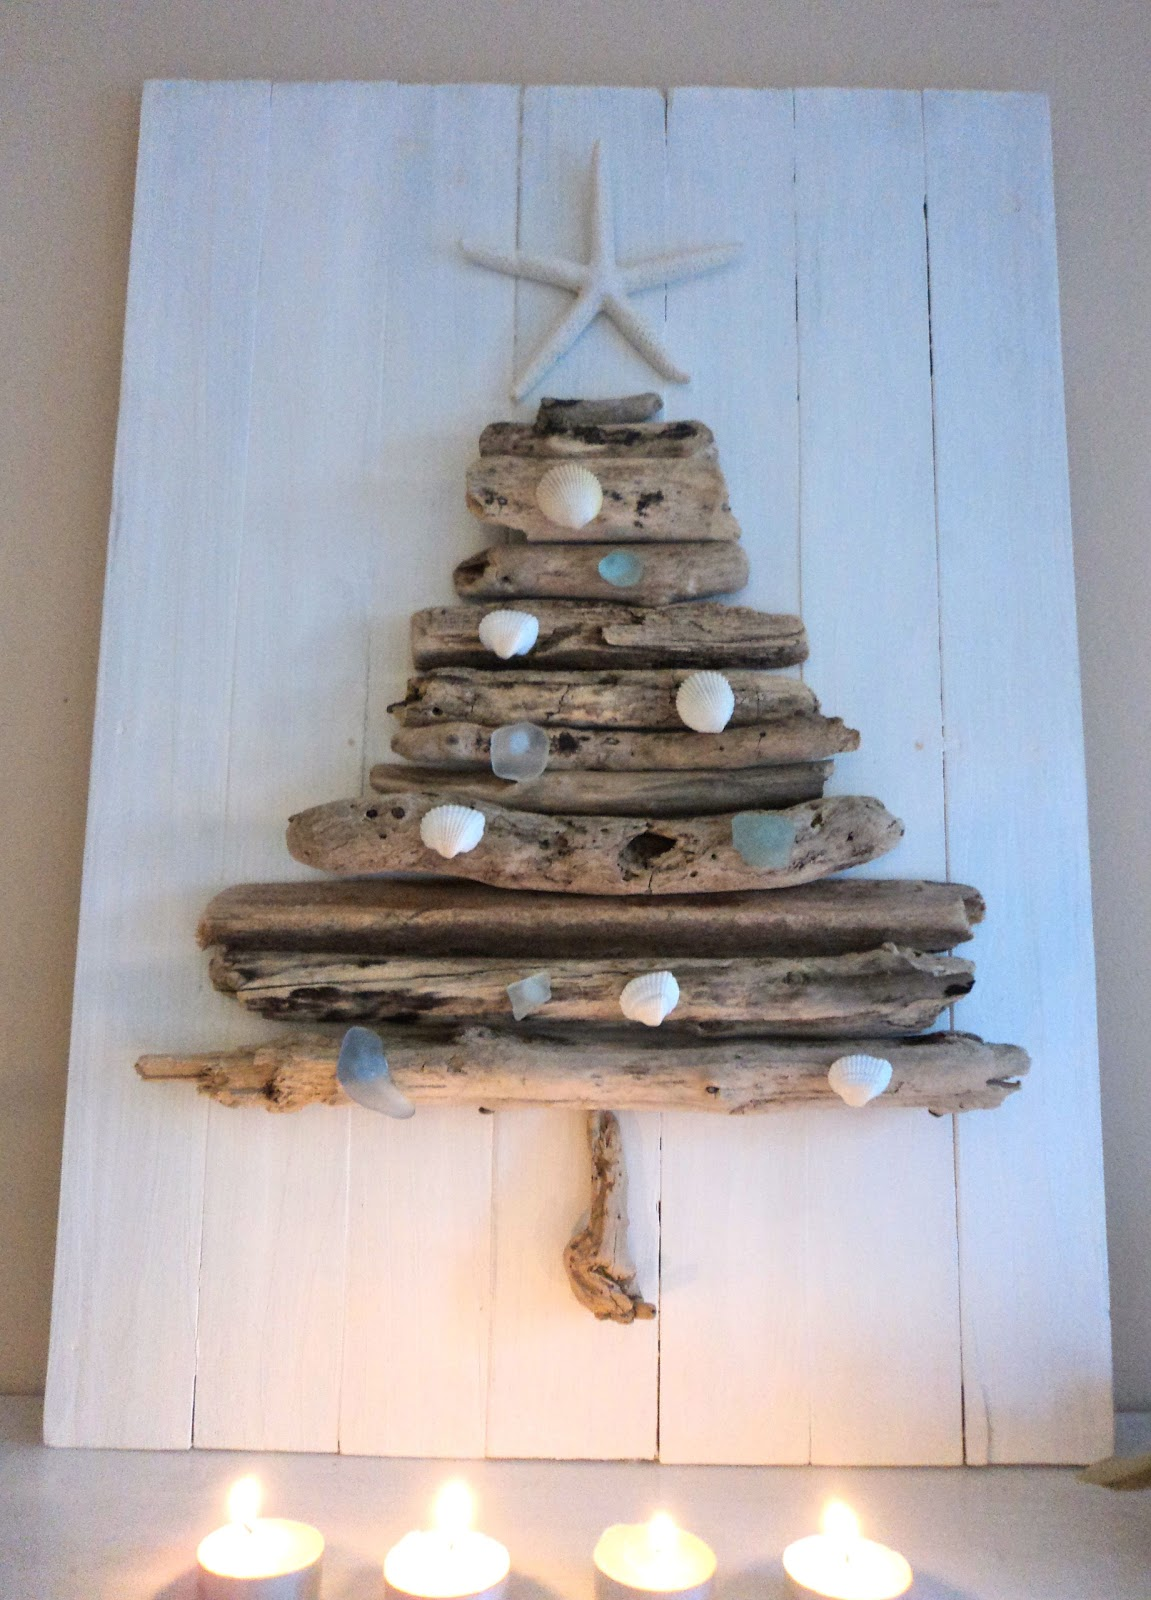 Christmas wood crafts on pinterest just b cause for Wood crafts to make for christmas